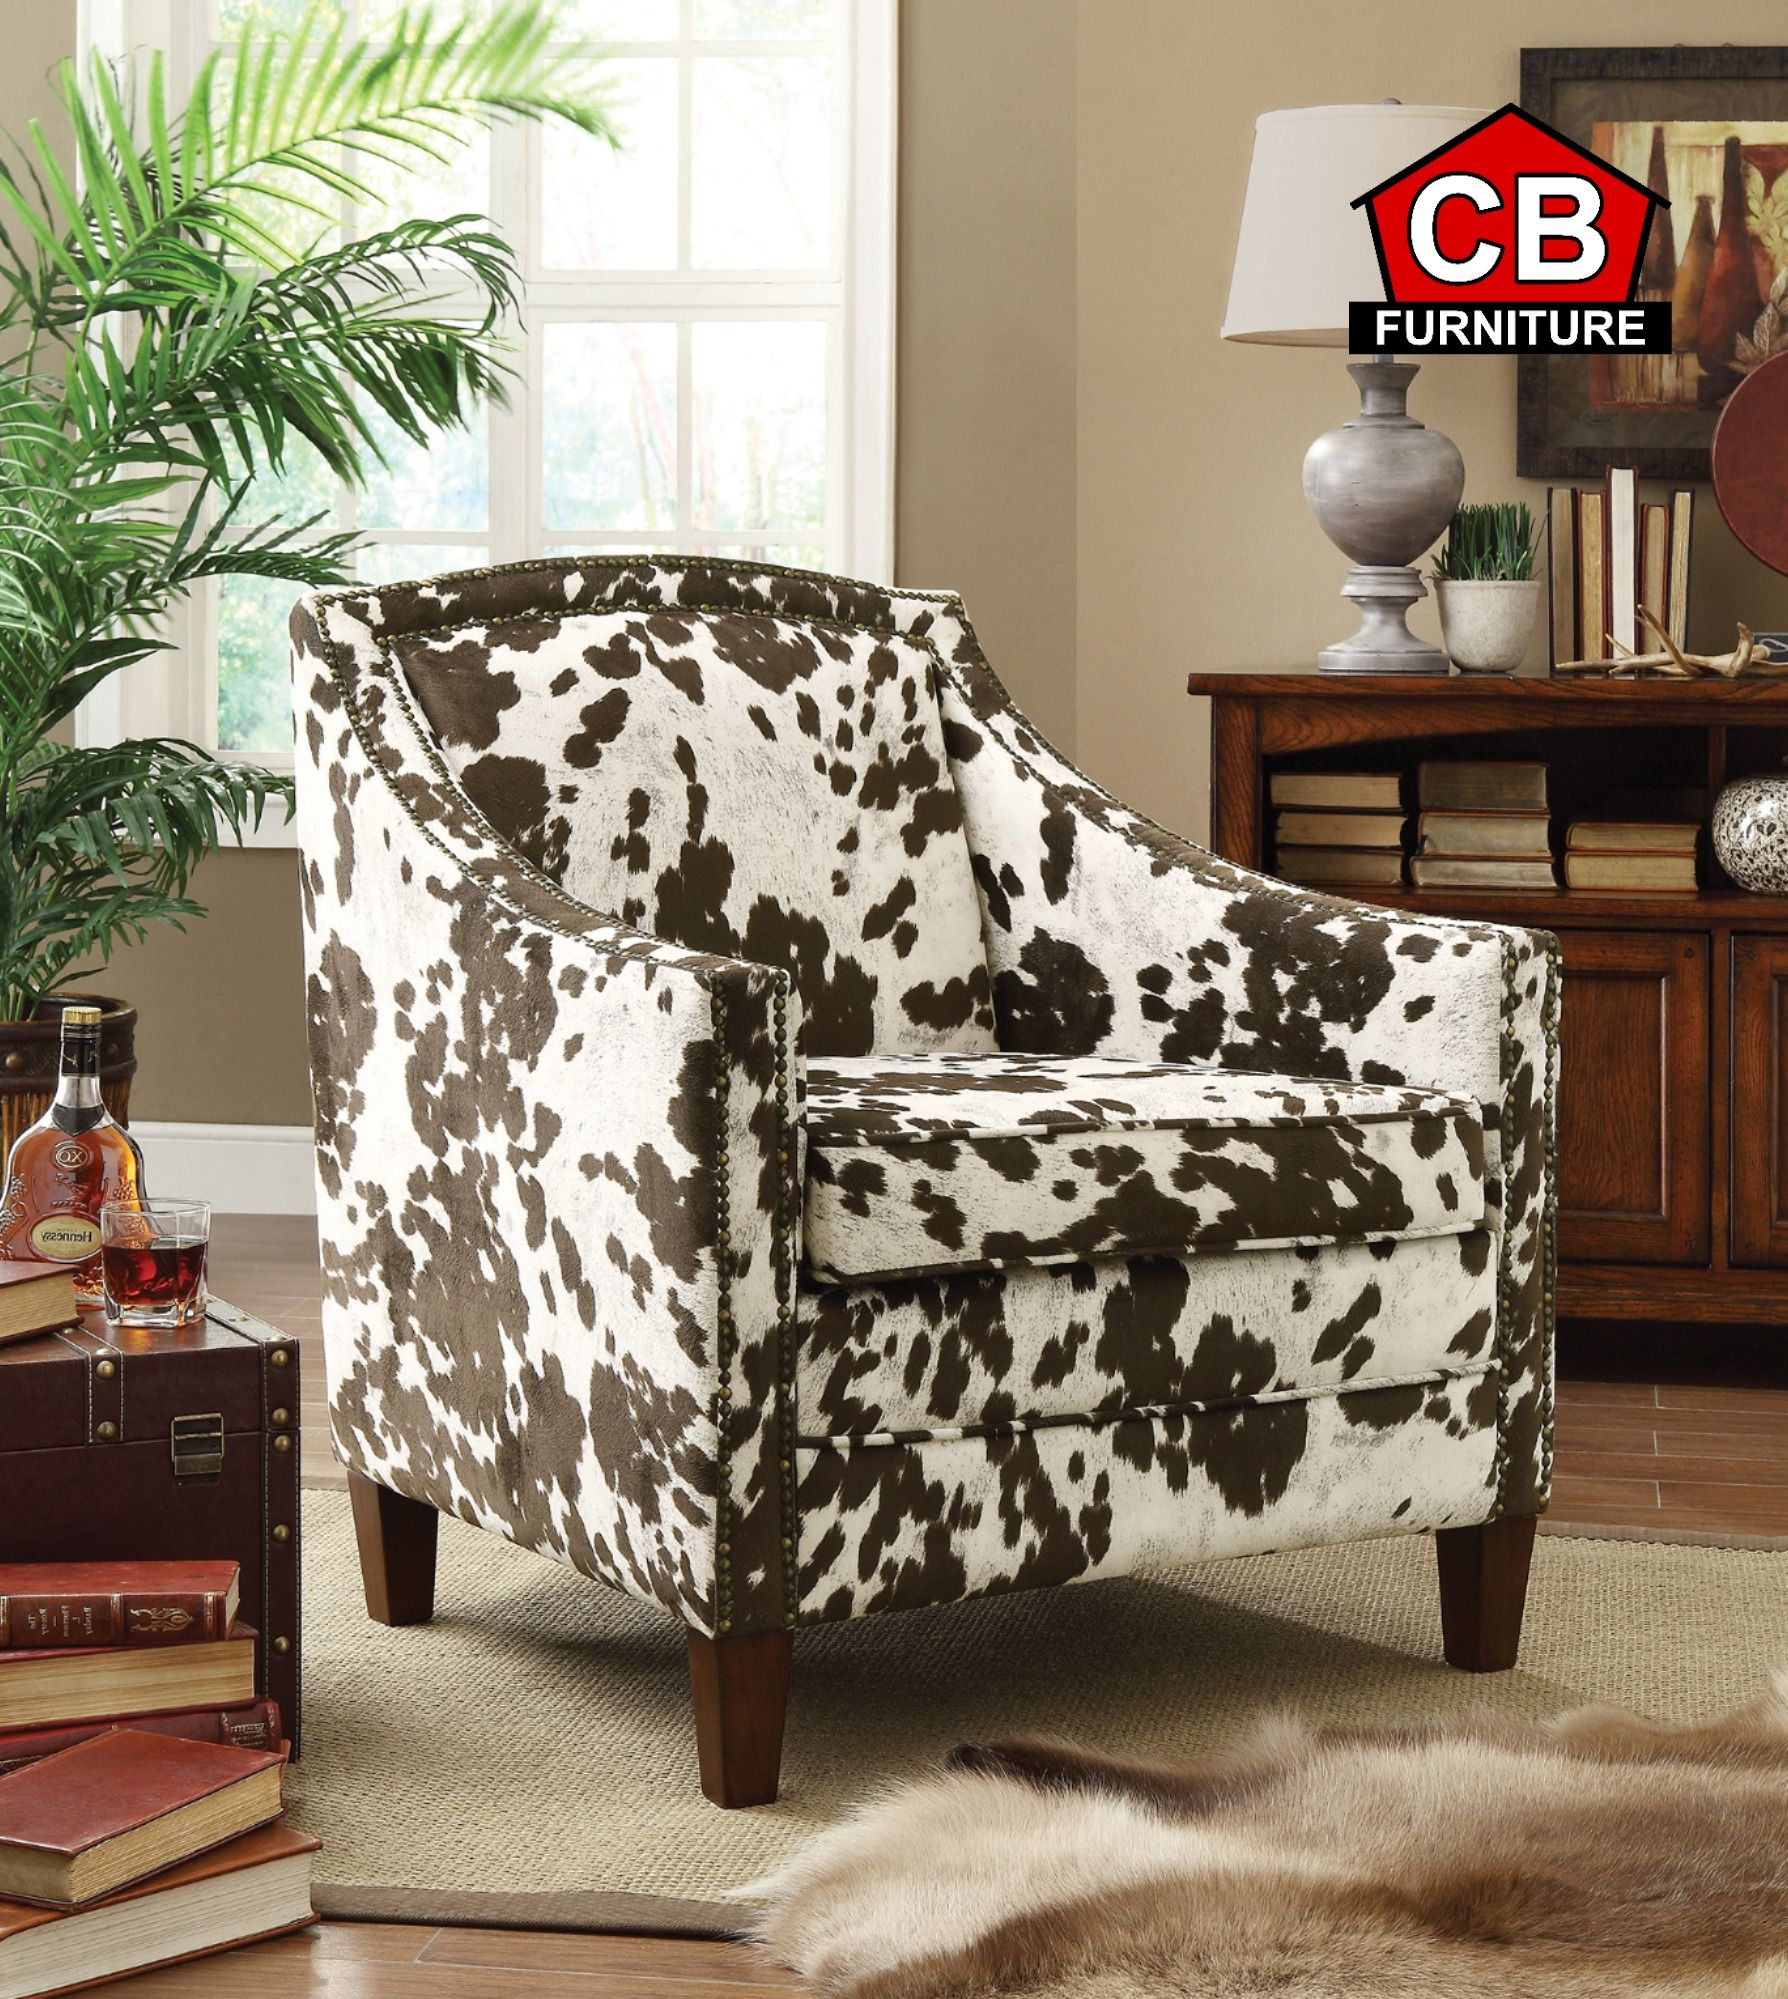 Add a unique accent chair to your home with the adele